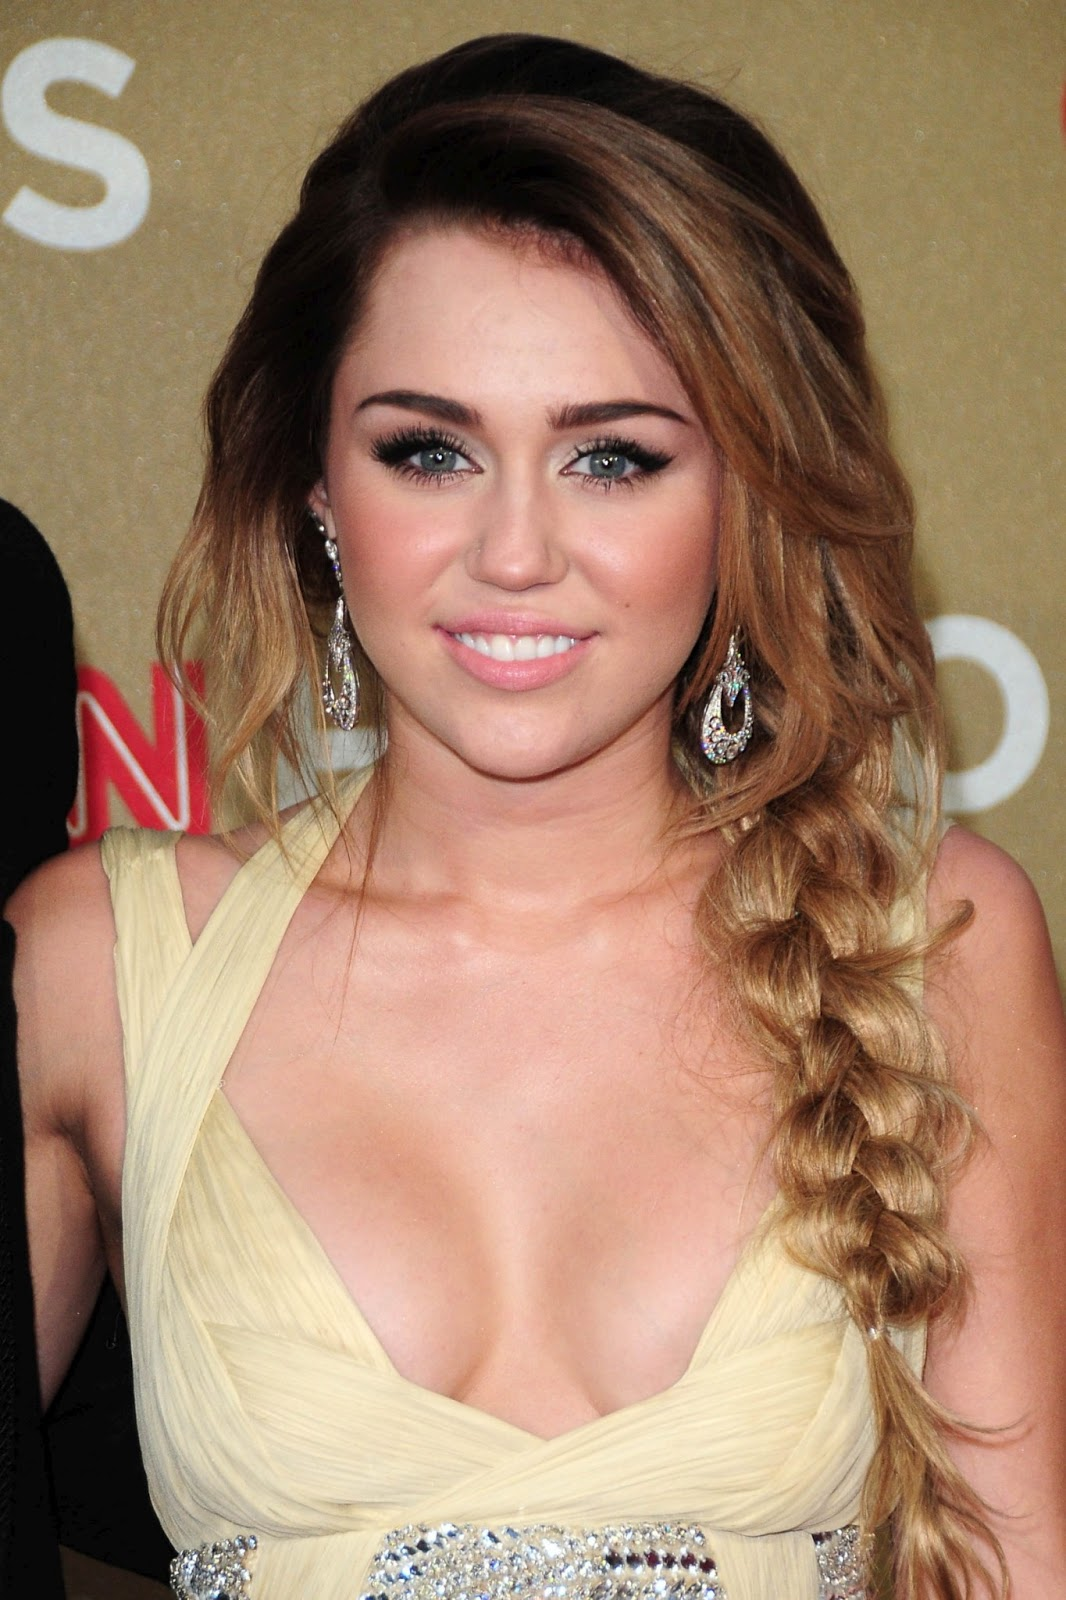 Miley Cyrus Breast Pics